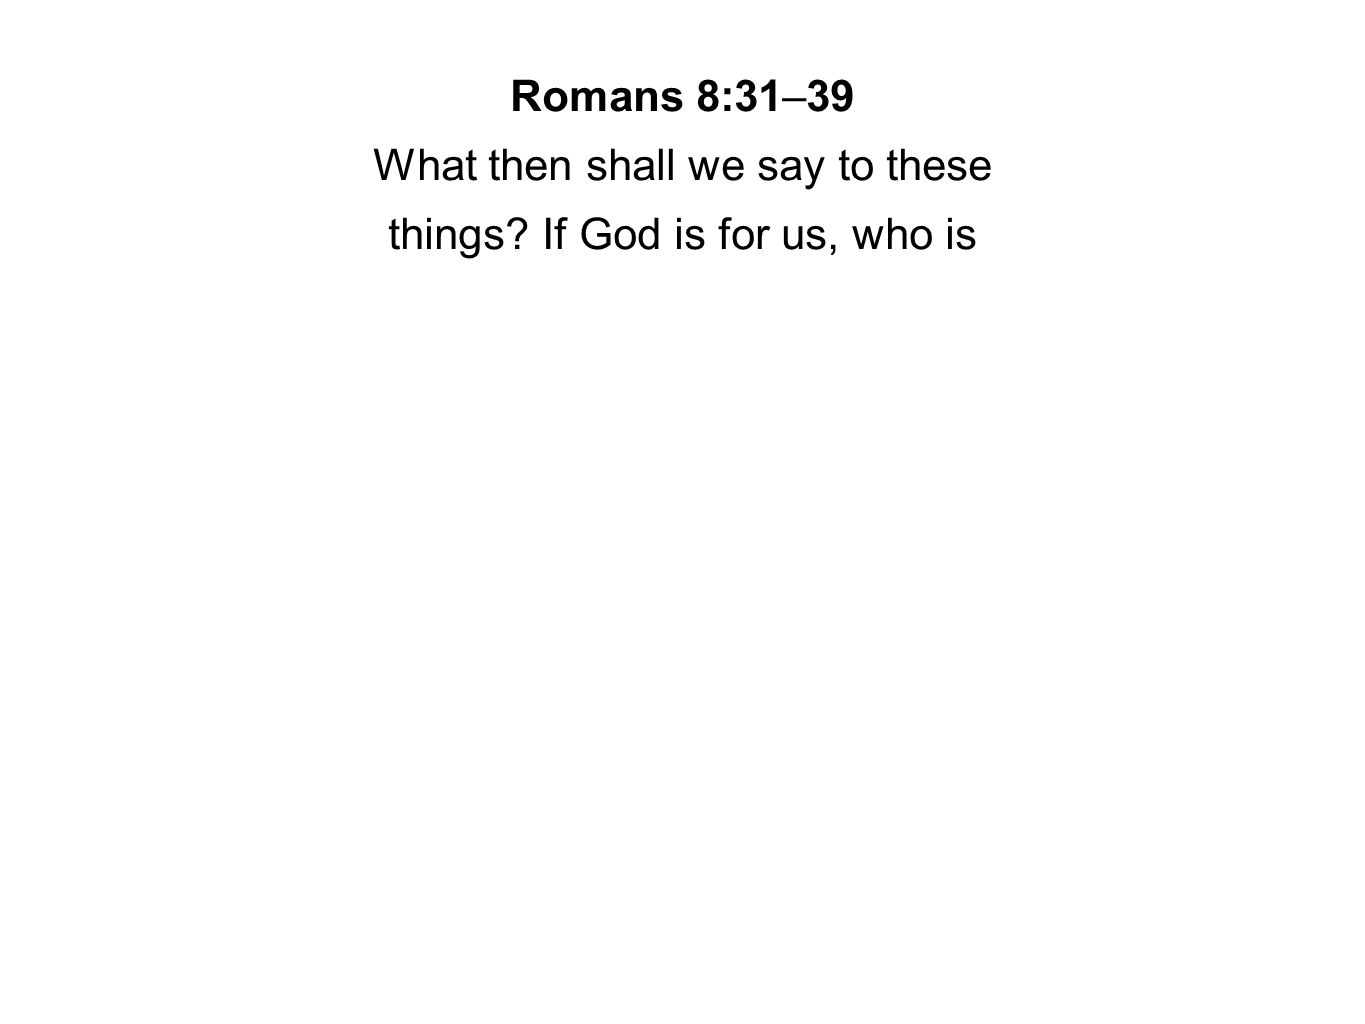 Romans 10:8–13 But what does it say? The word is near you, in your mouth and in your